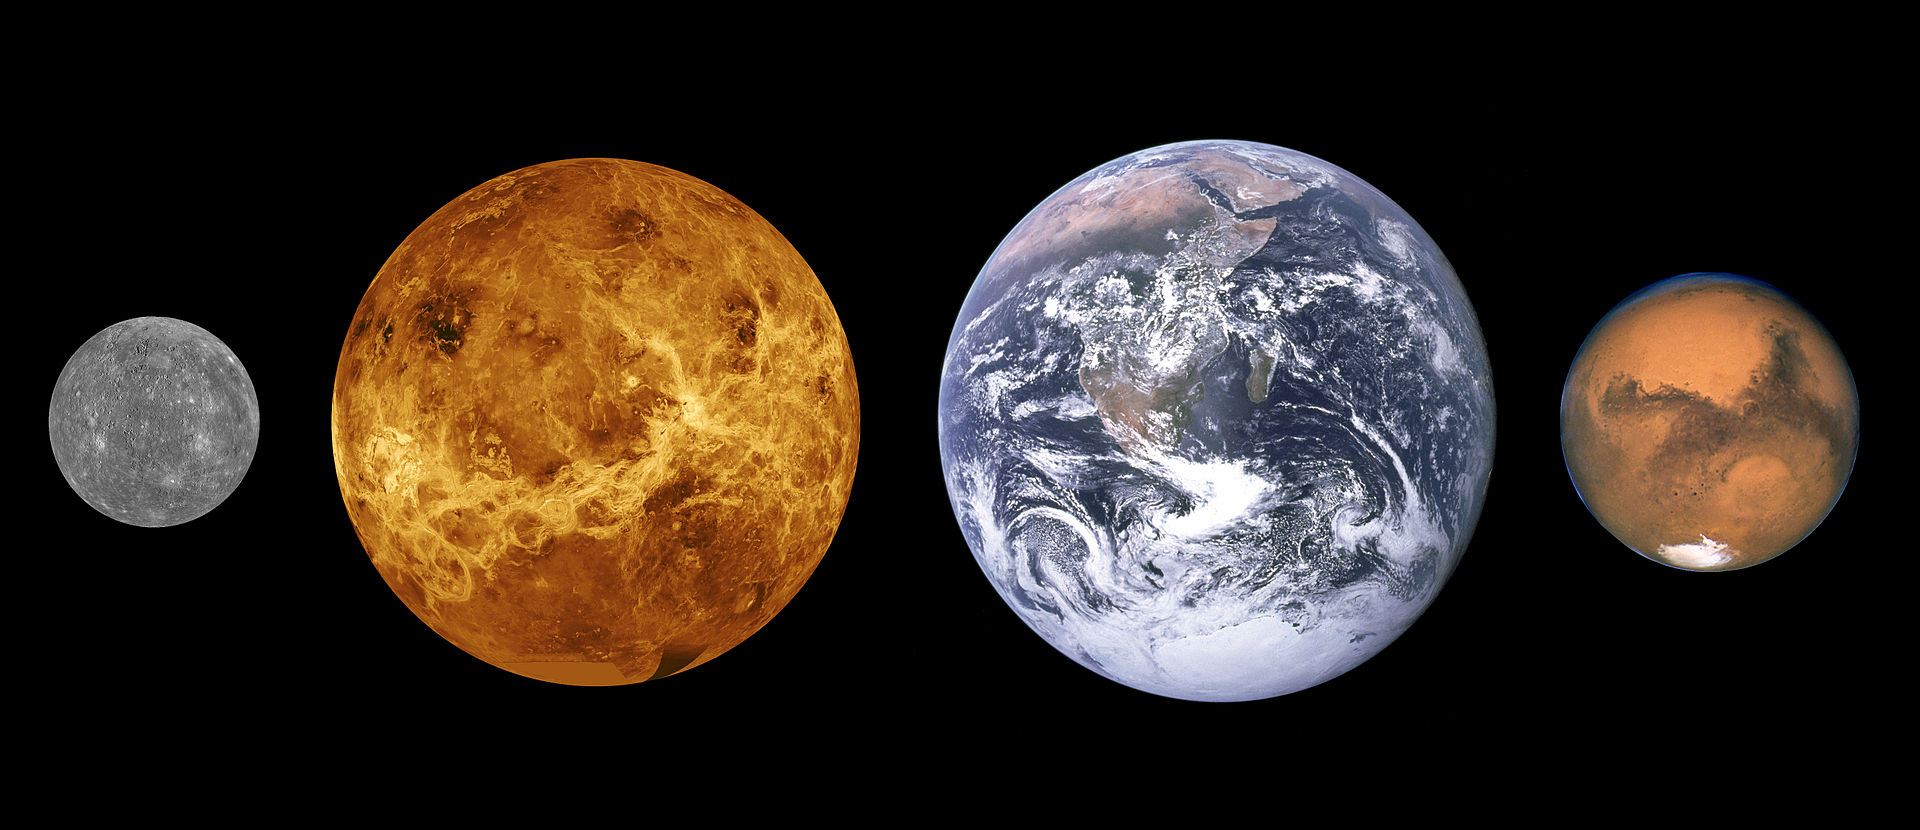 What is the difference between a planet and a star